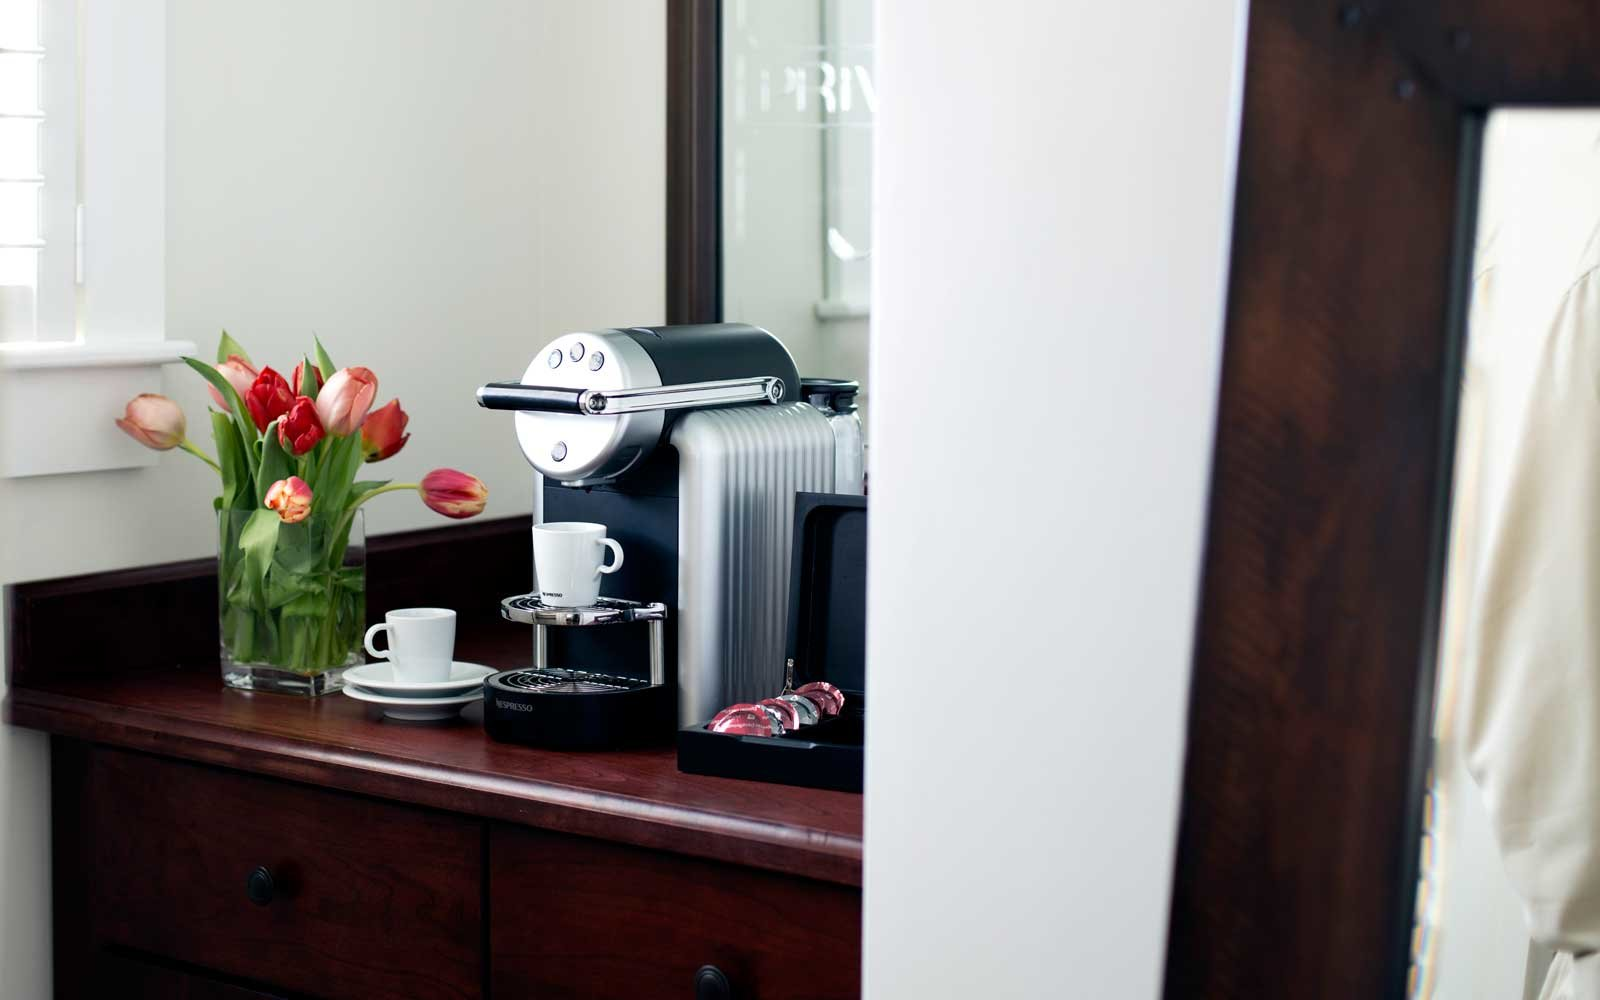 Why You Might Not Want To Use That Hotel Room Coffee Maker